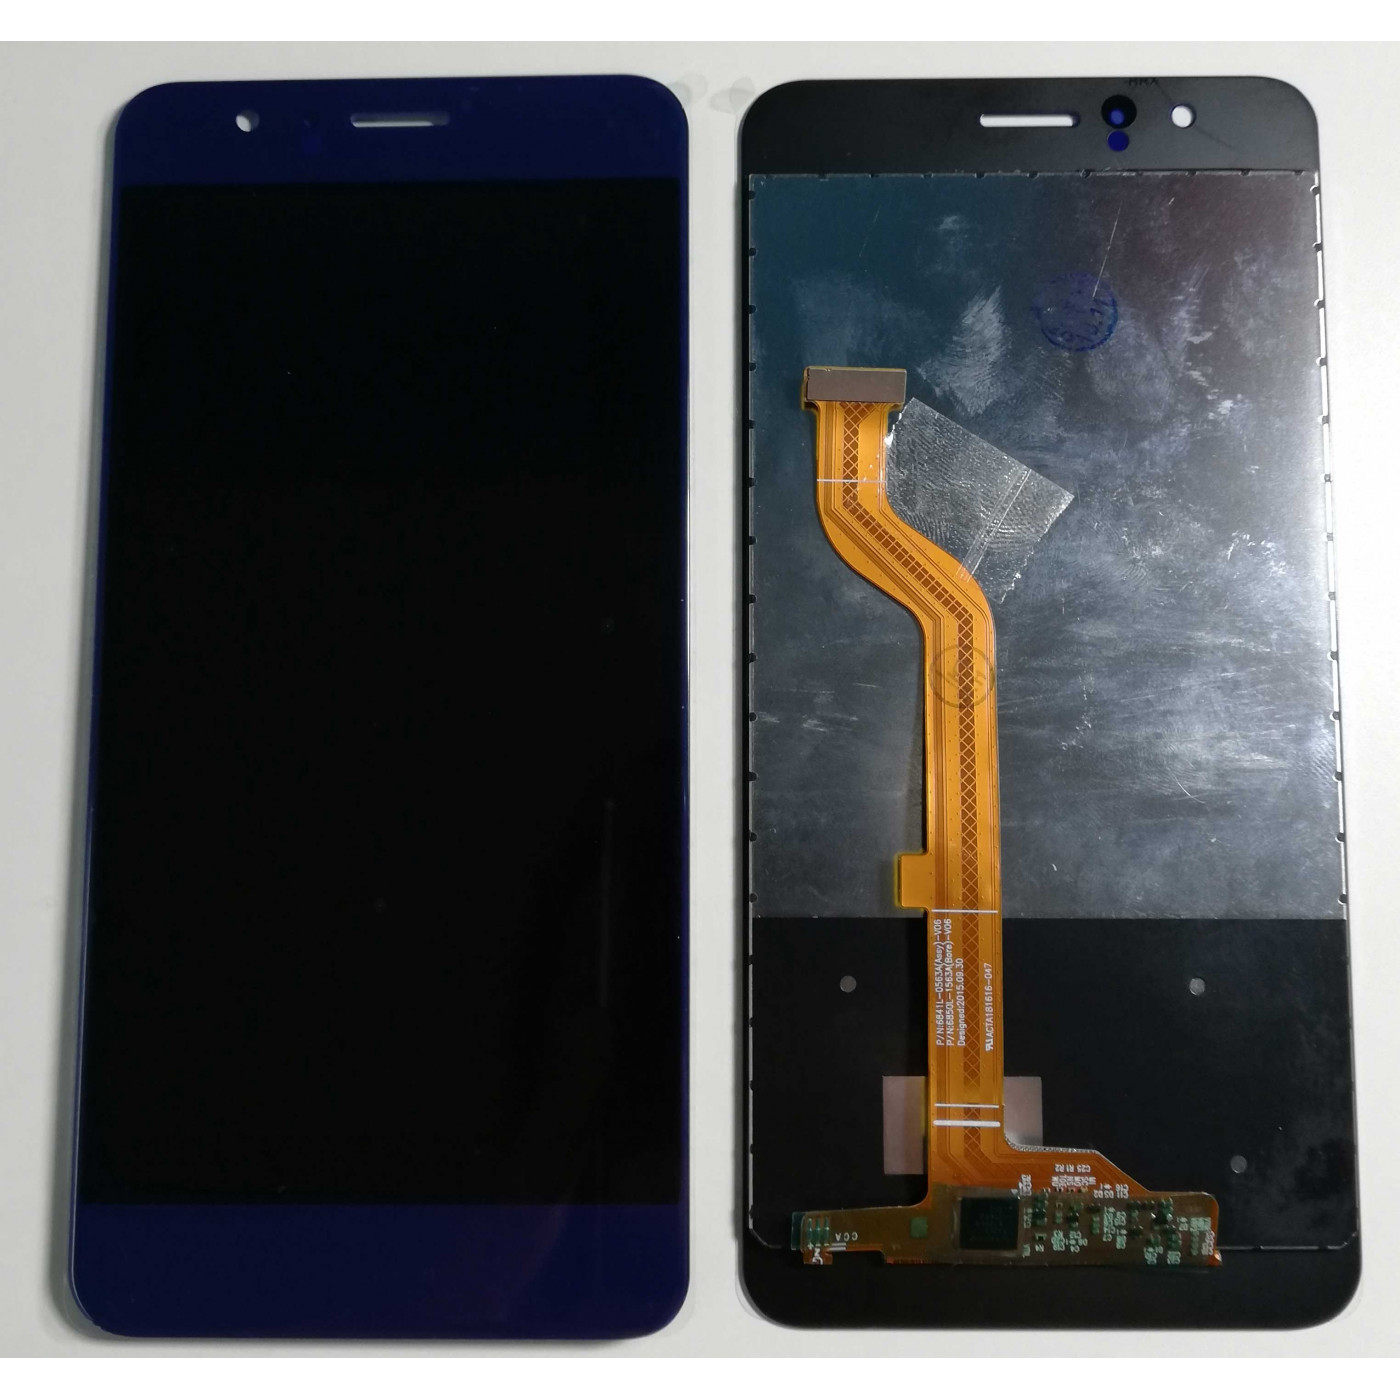 LCD-ANZEIGE für HUAWEI HONOR 8 FRD-L09 FRD-L19 Blau TOUCH SCREEN GLASS